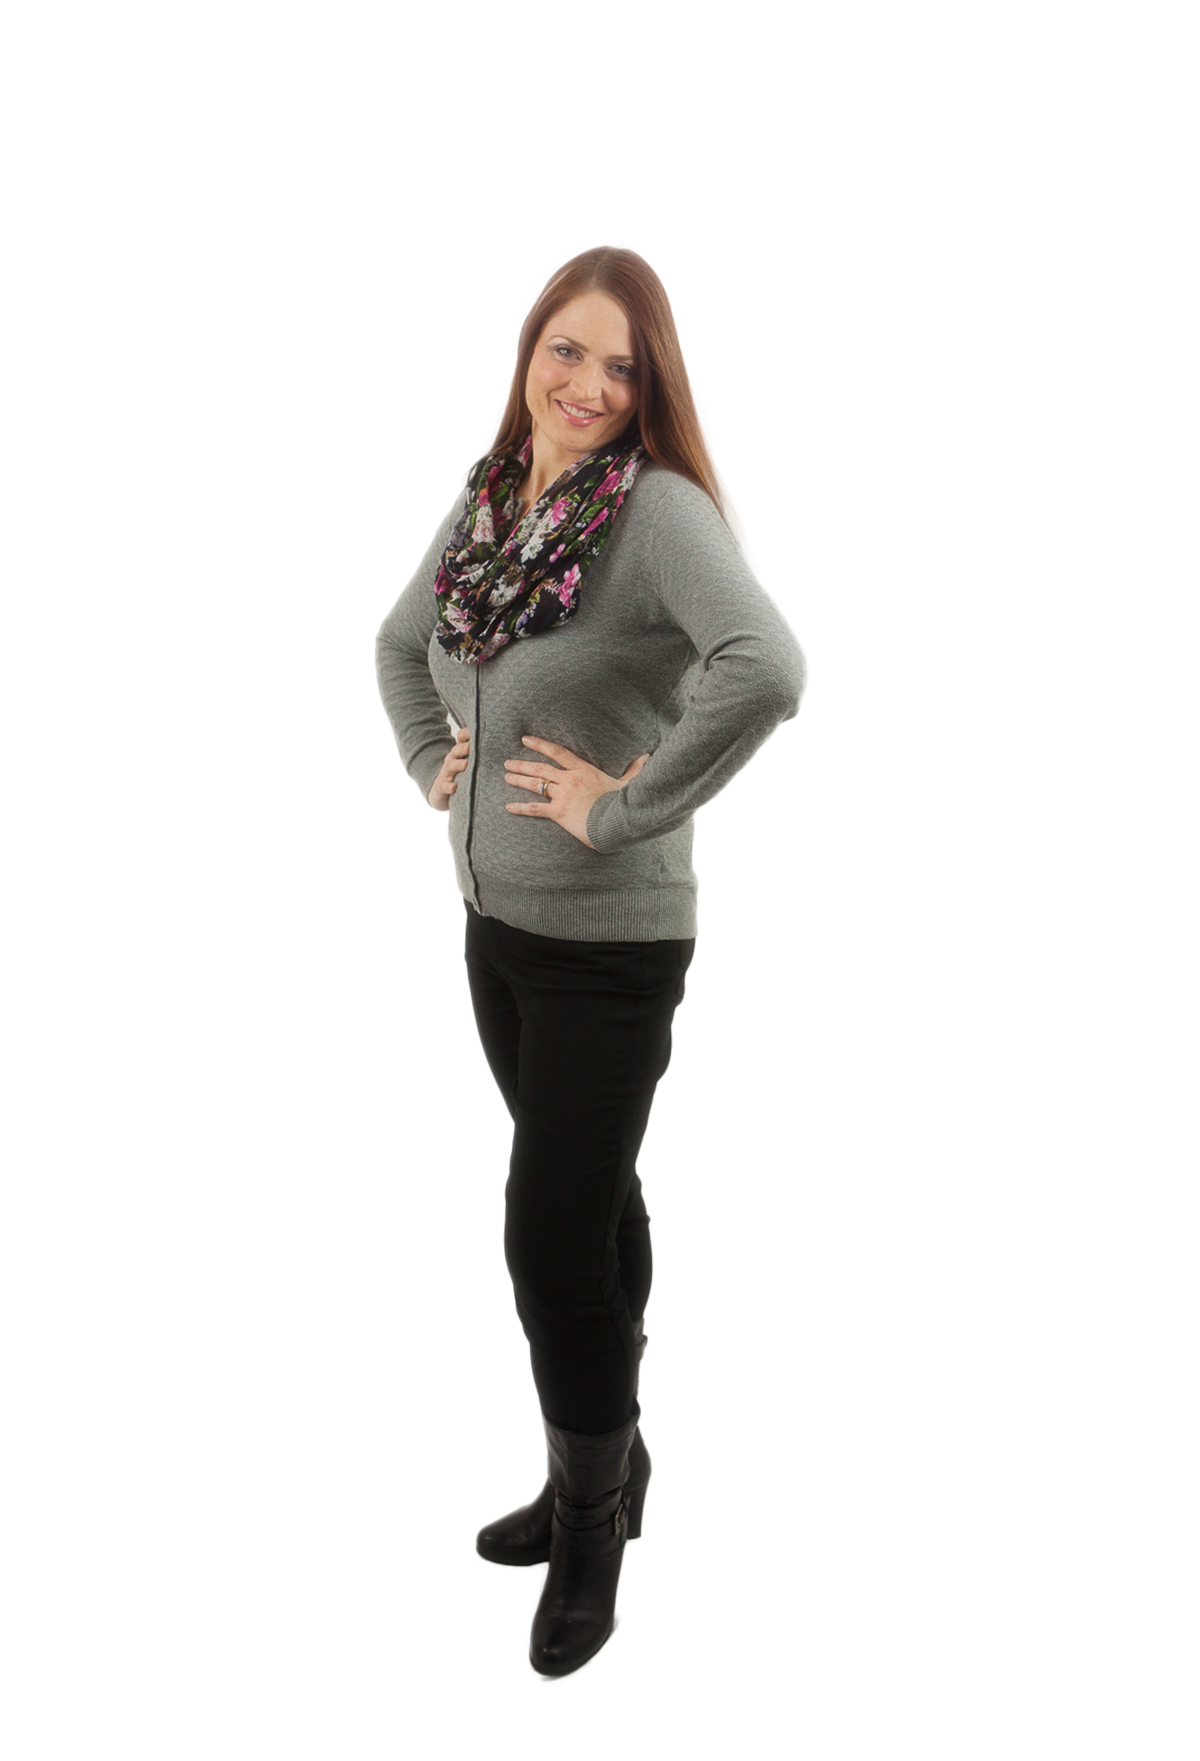 Picture of Leah Milde at her weight loss goal of 76 pounds gone for good.